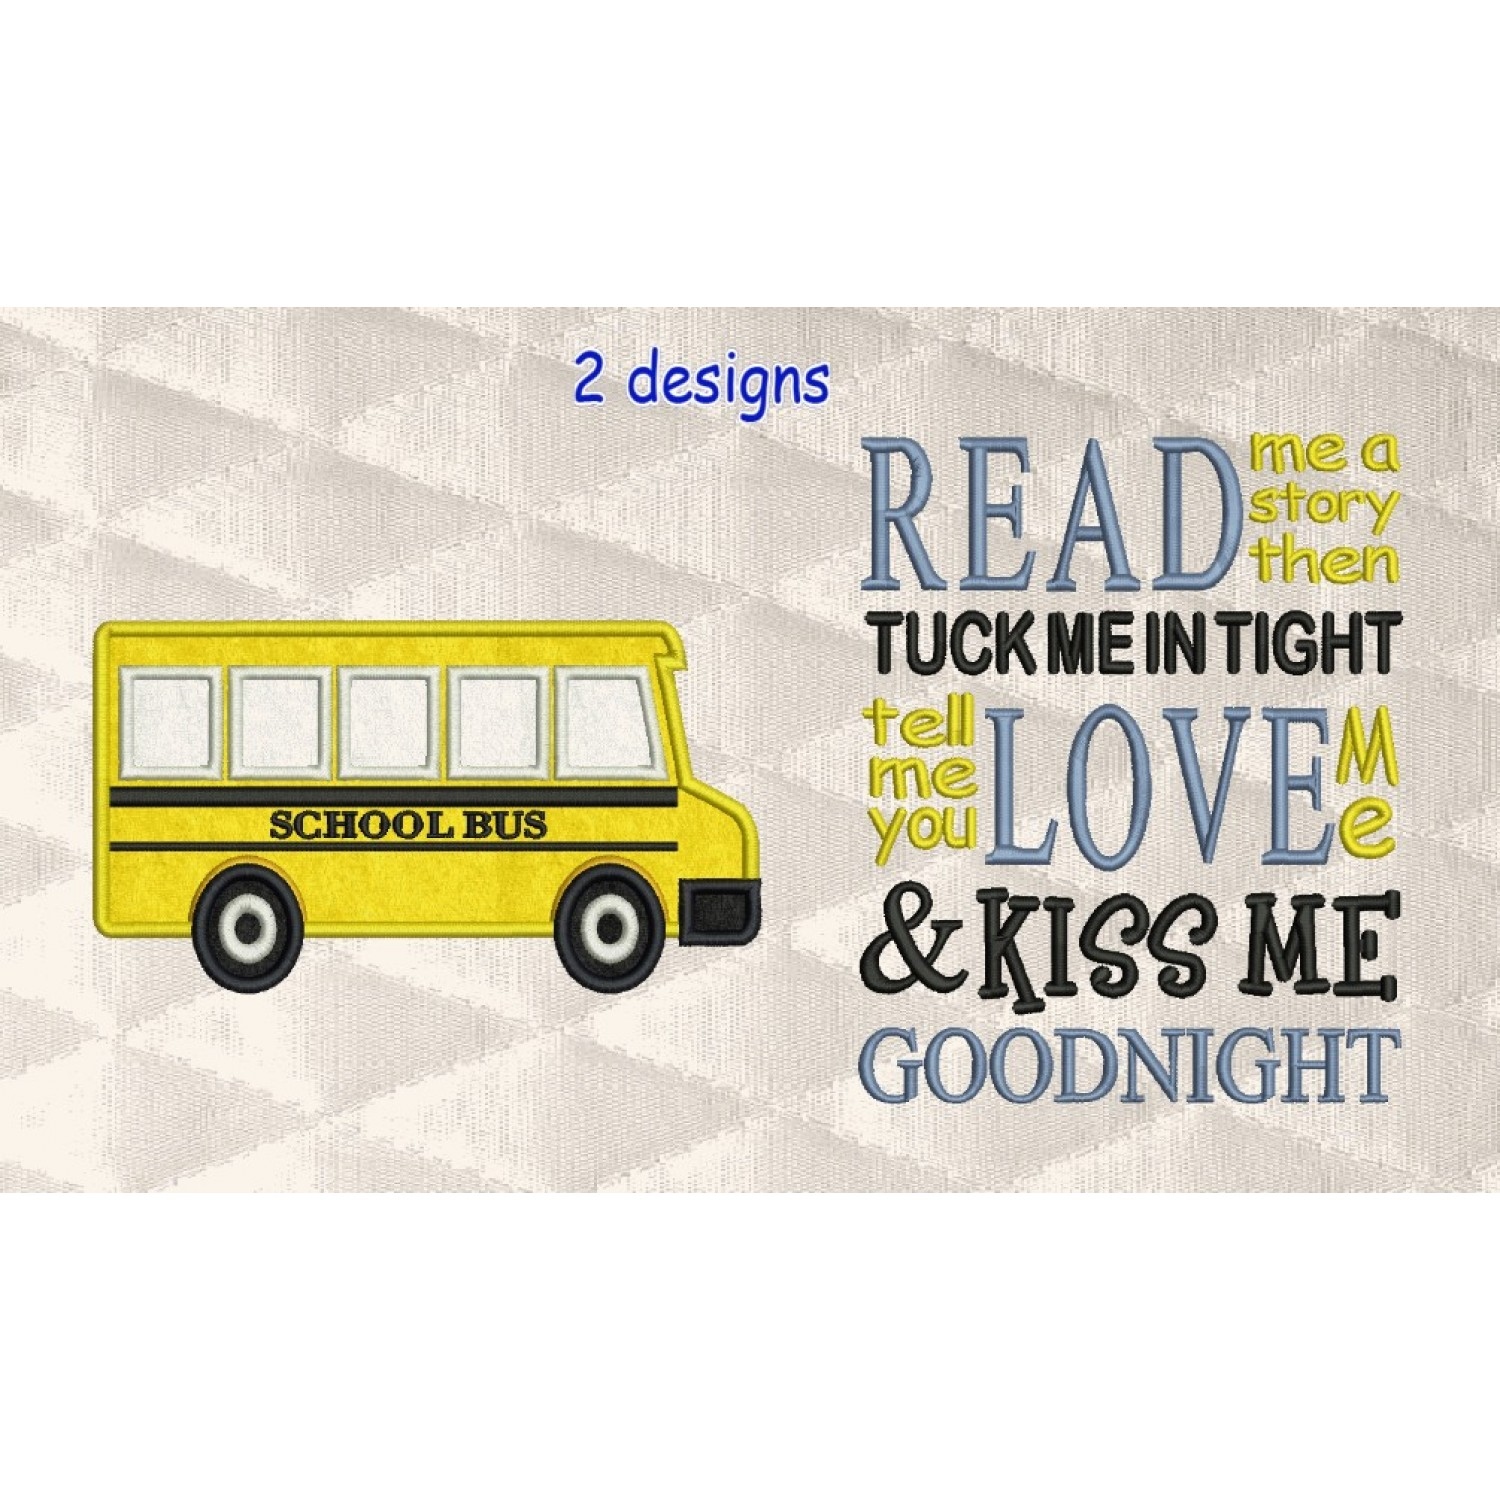 school bus with read me a story